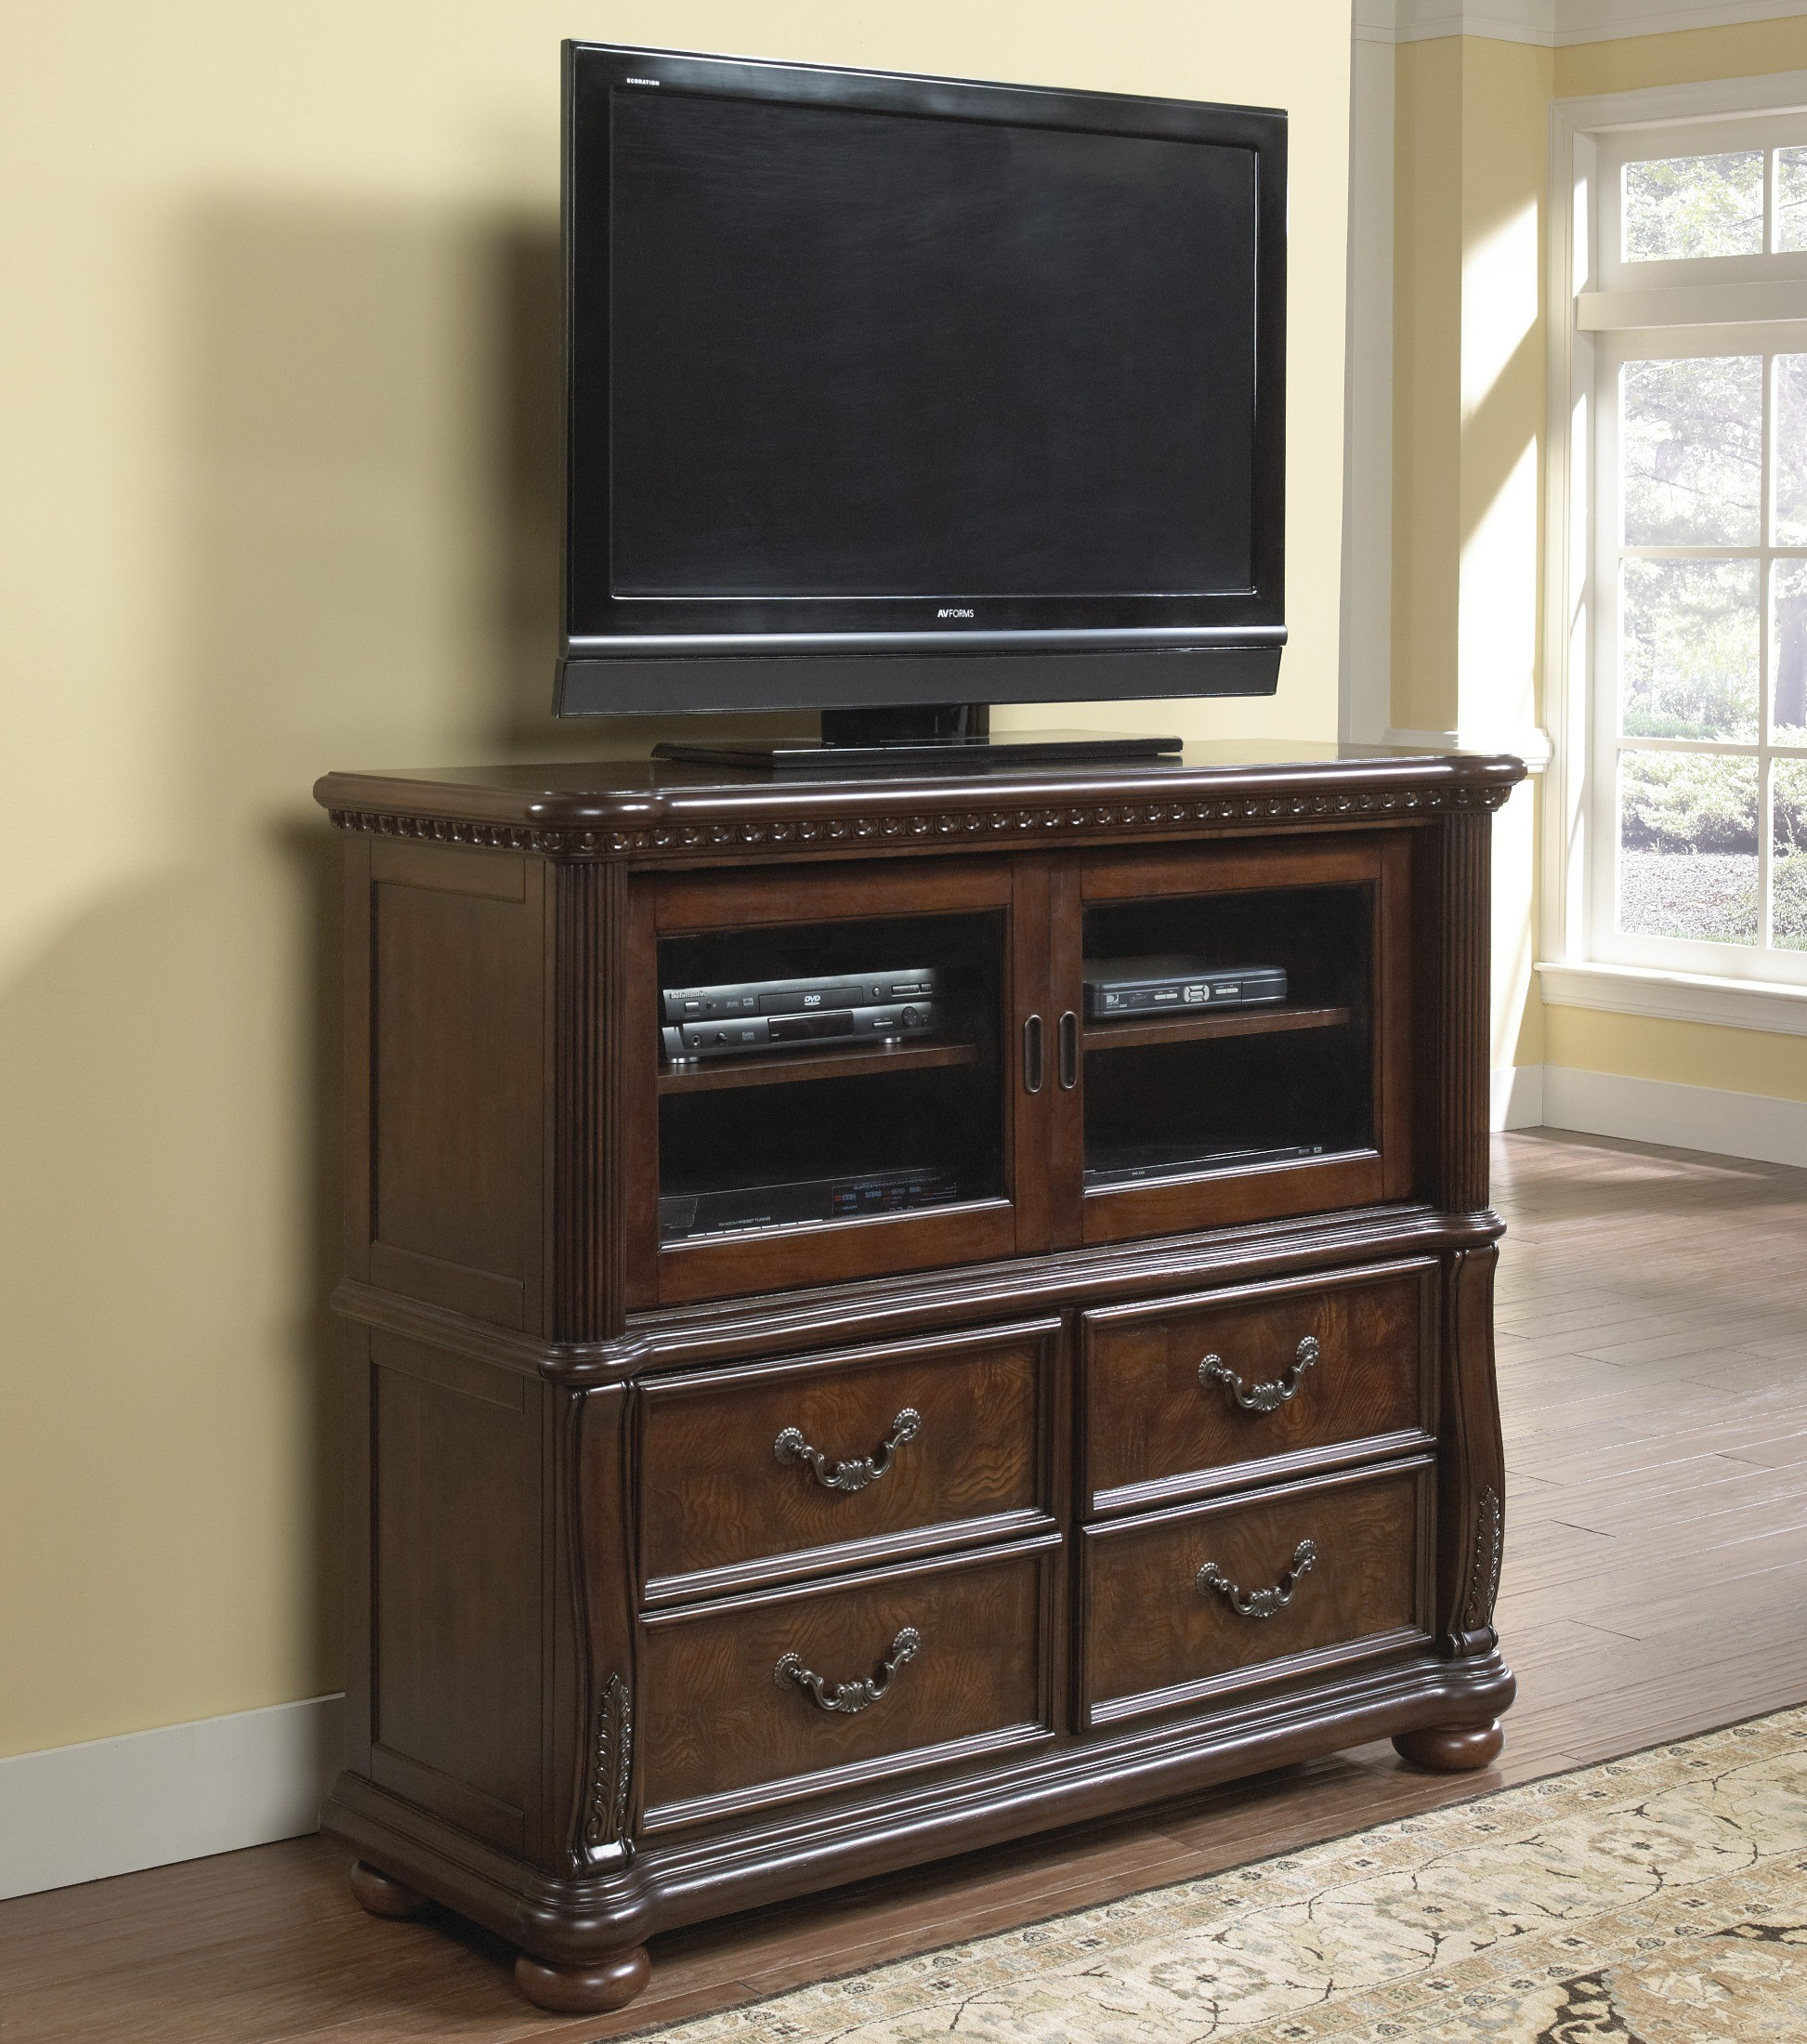 san marino bedroom set from samuel lawrence 3530 250 251 400